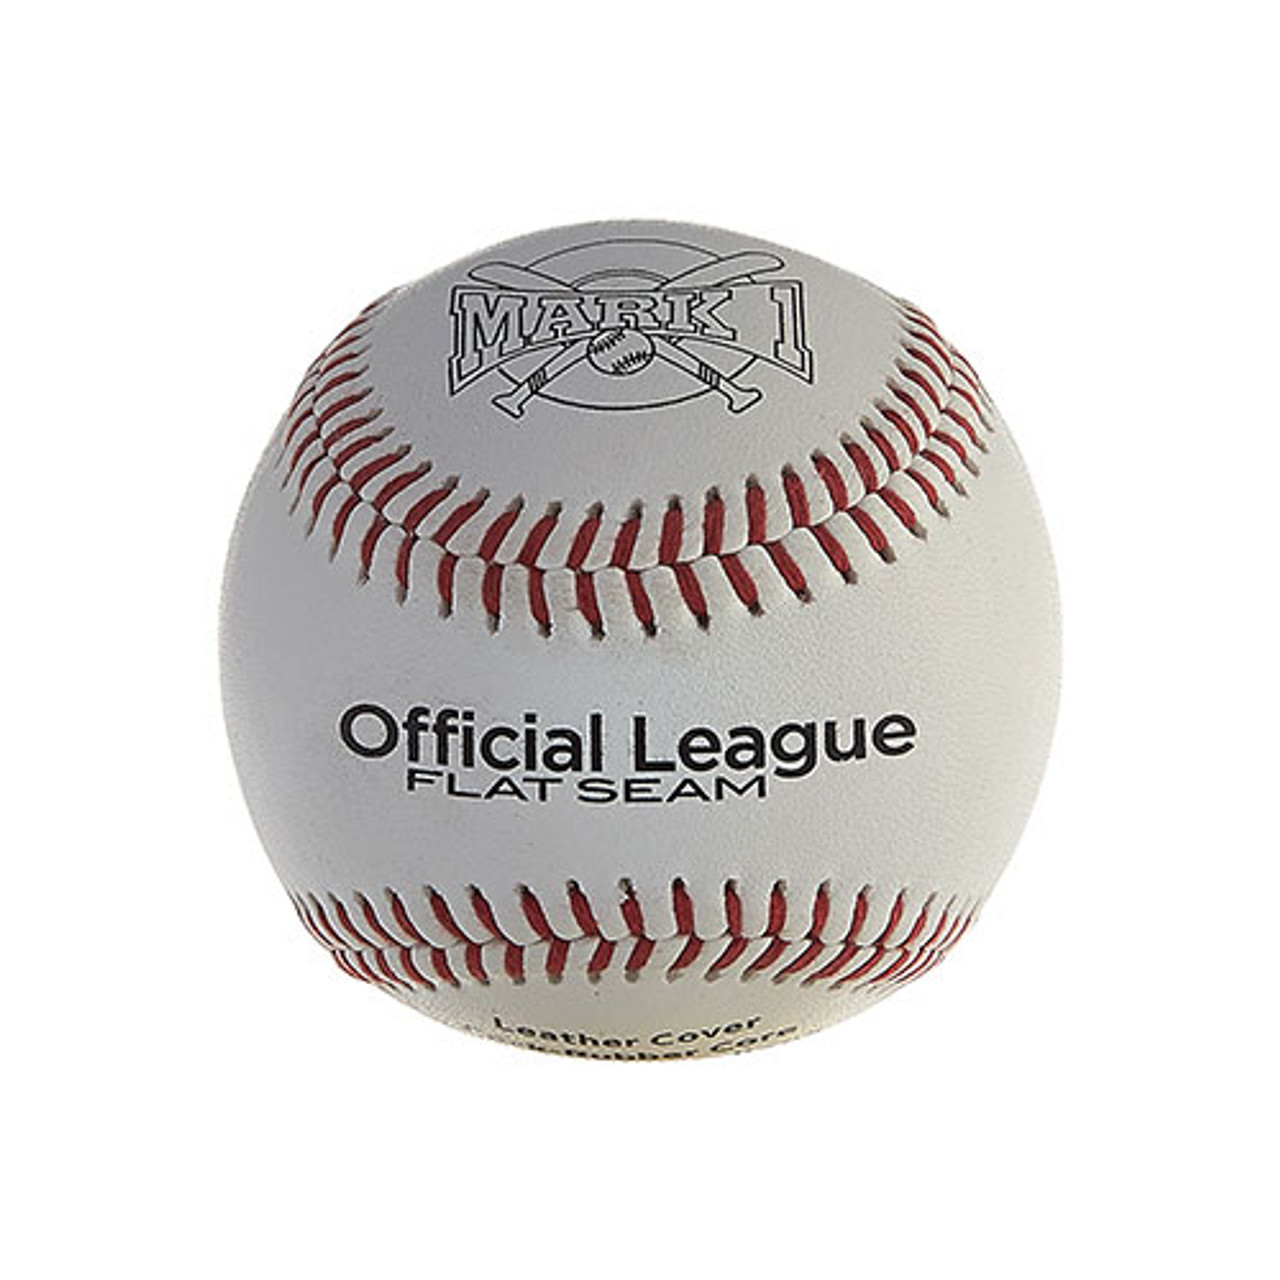 Mark 1 Official League Flat-Seam Baseballs